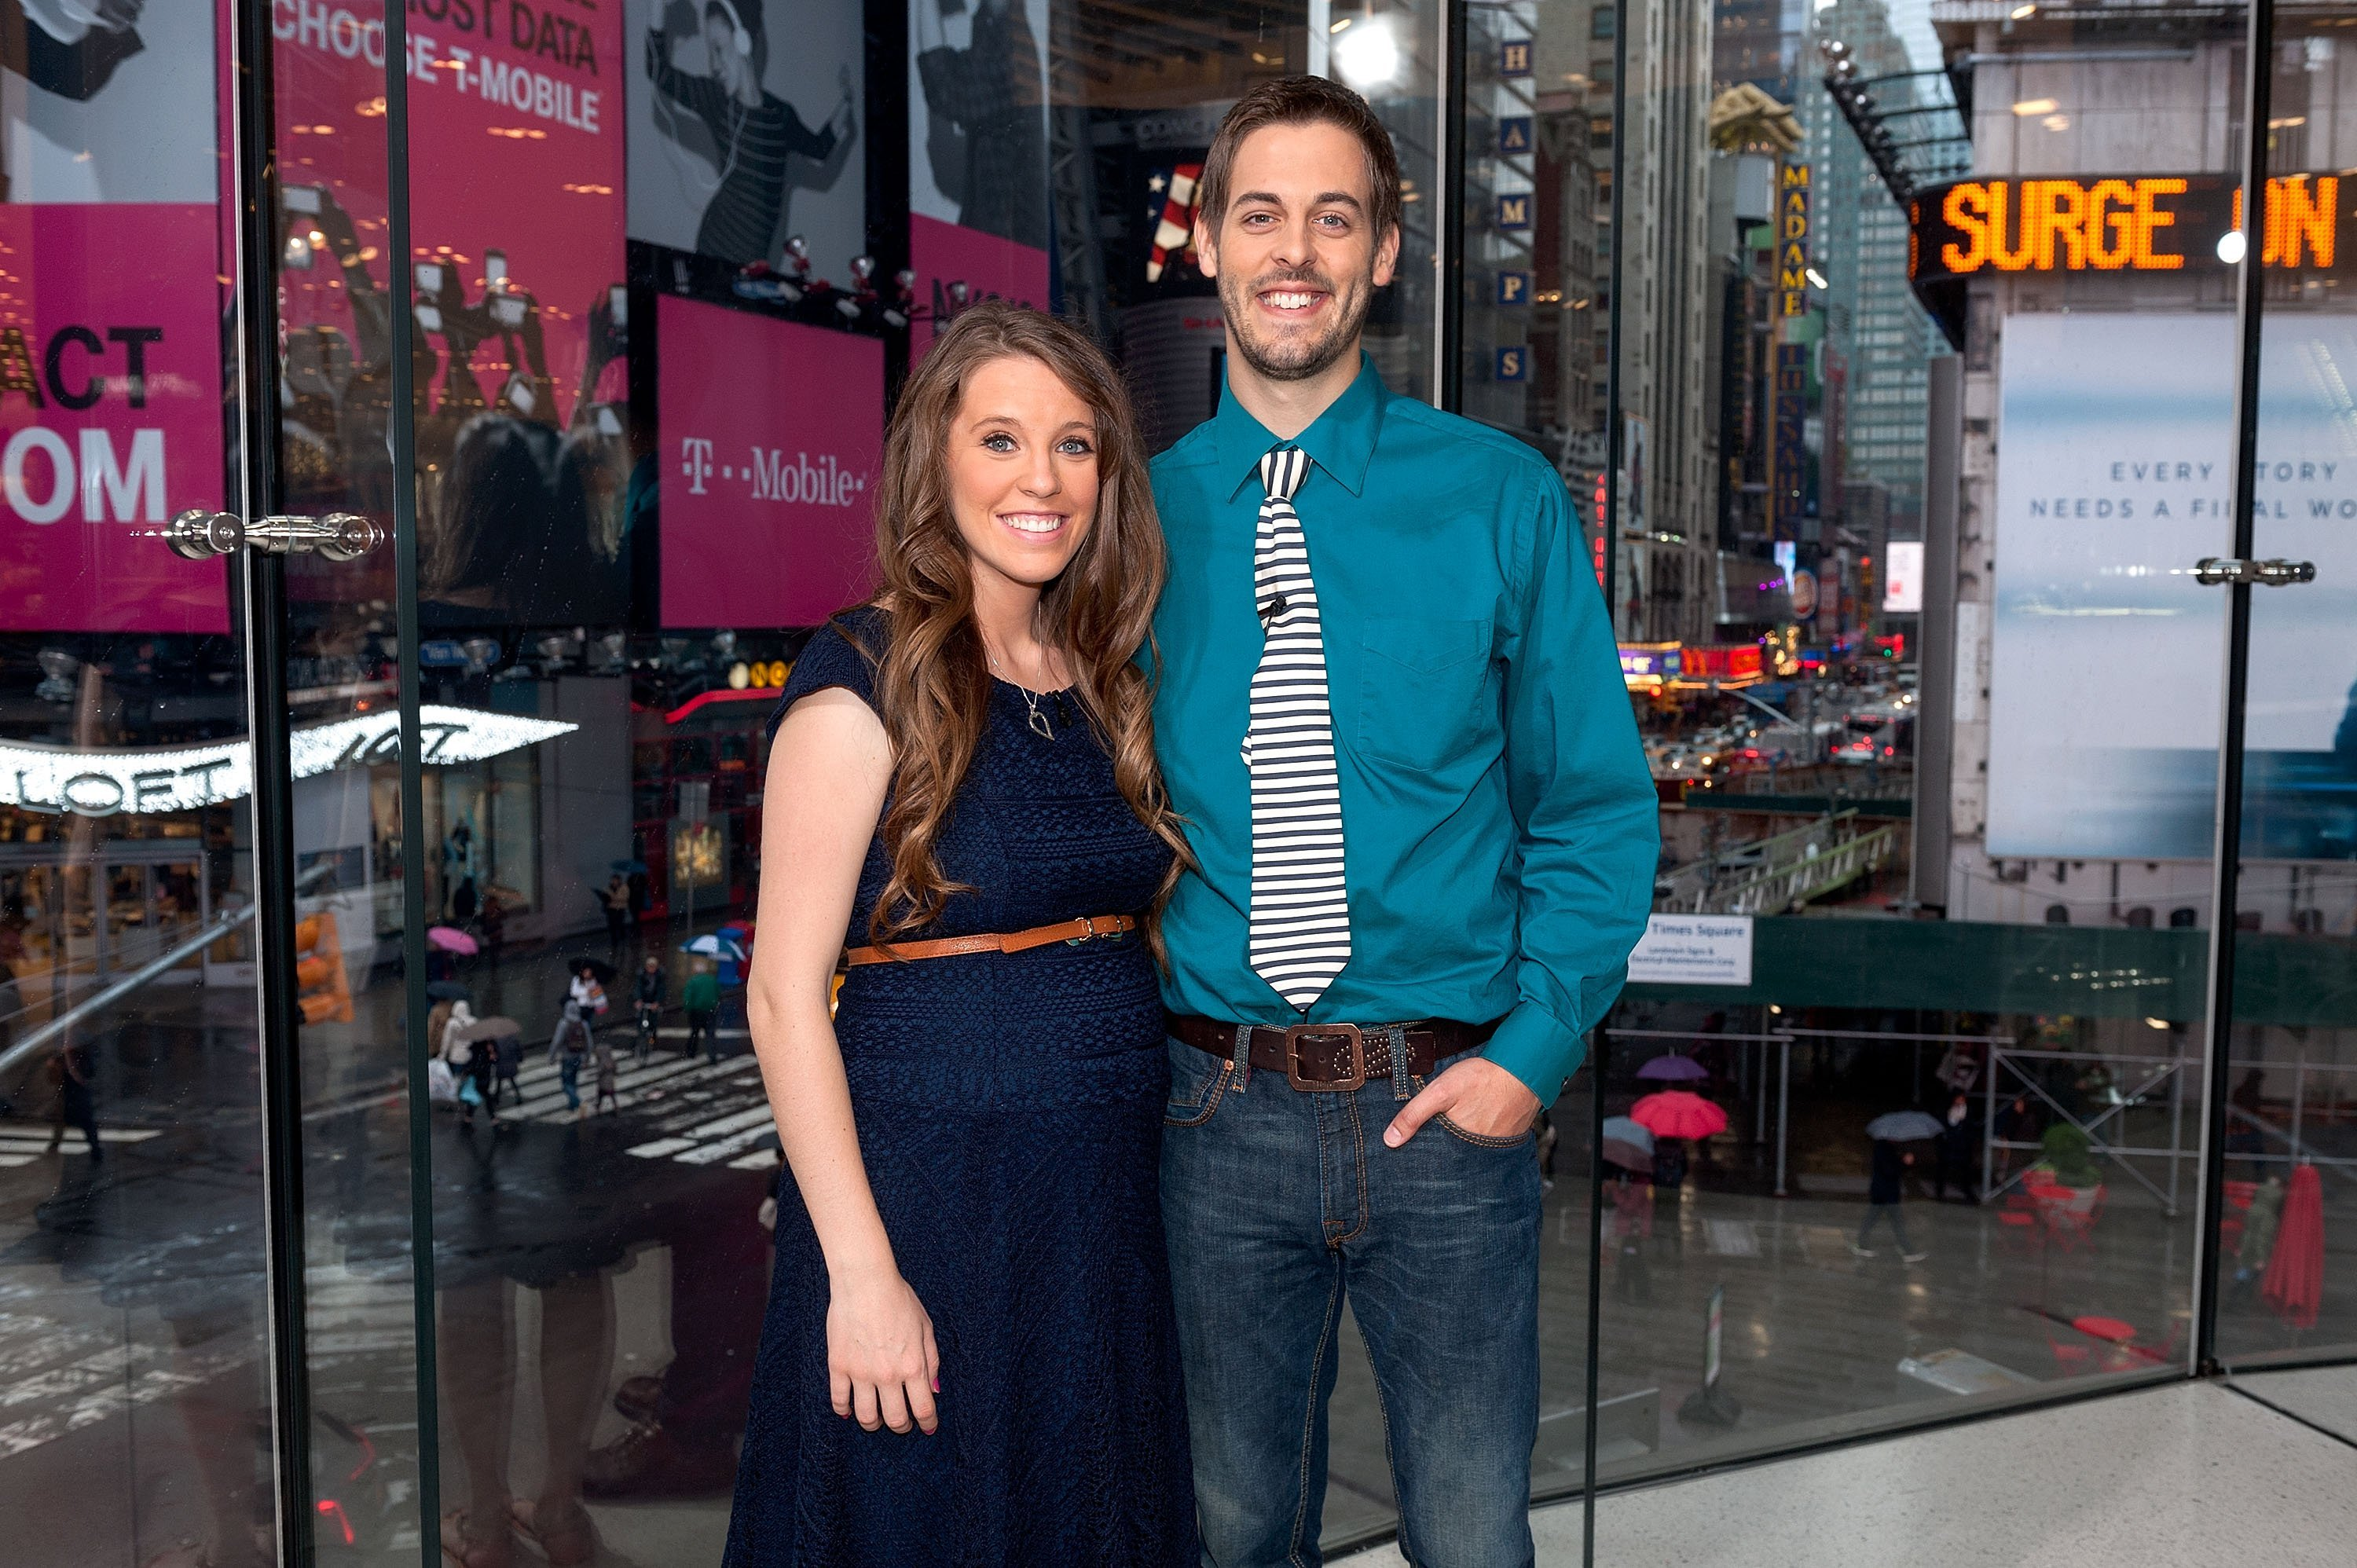 """Jill Duggar Dillar and Derick Dillar visit """"Extra"""" in Times Square, New York City on October 23, 2014 